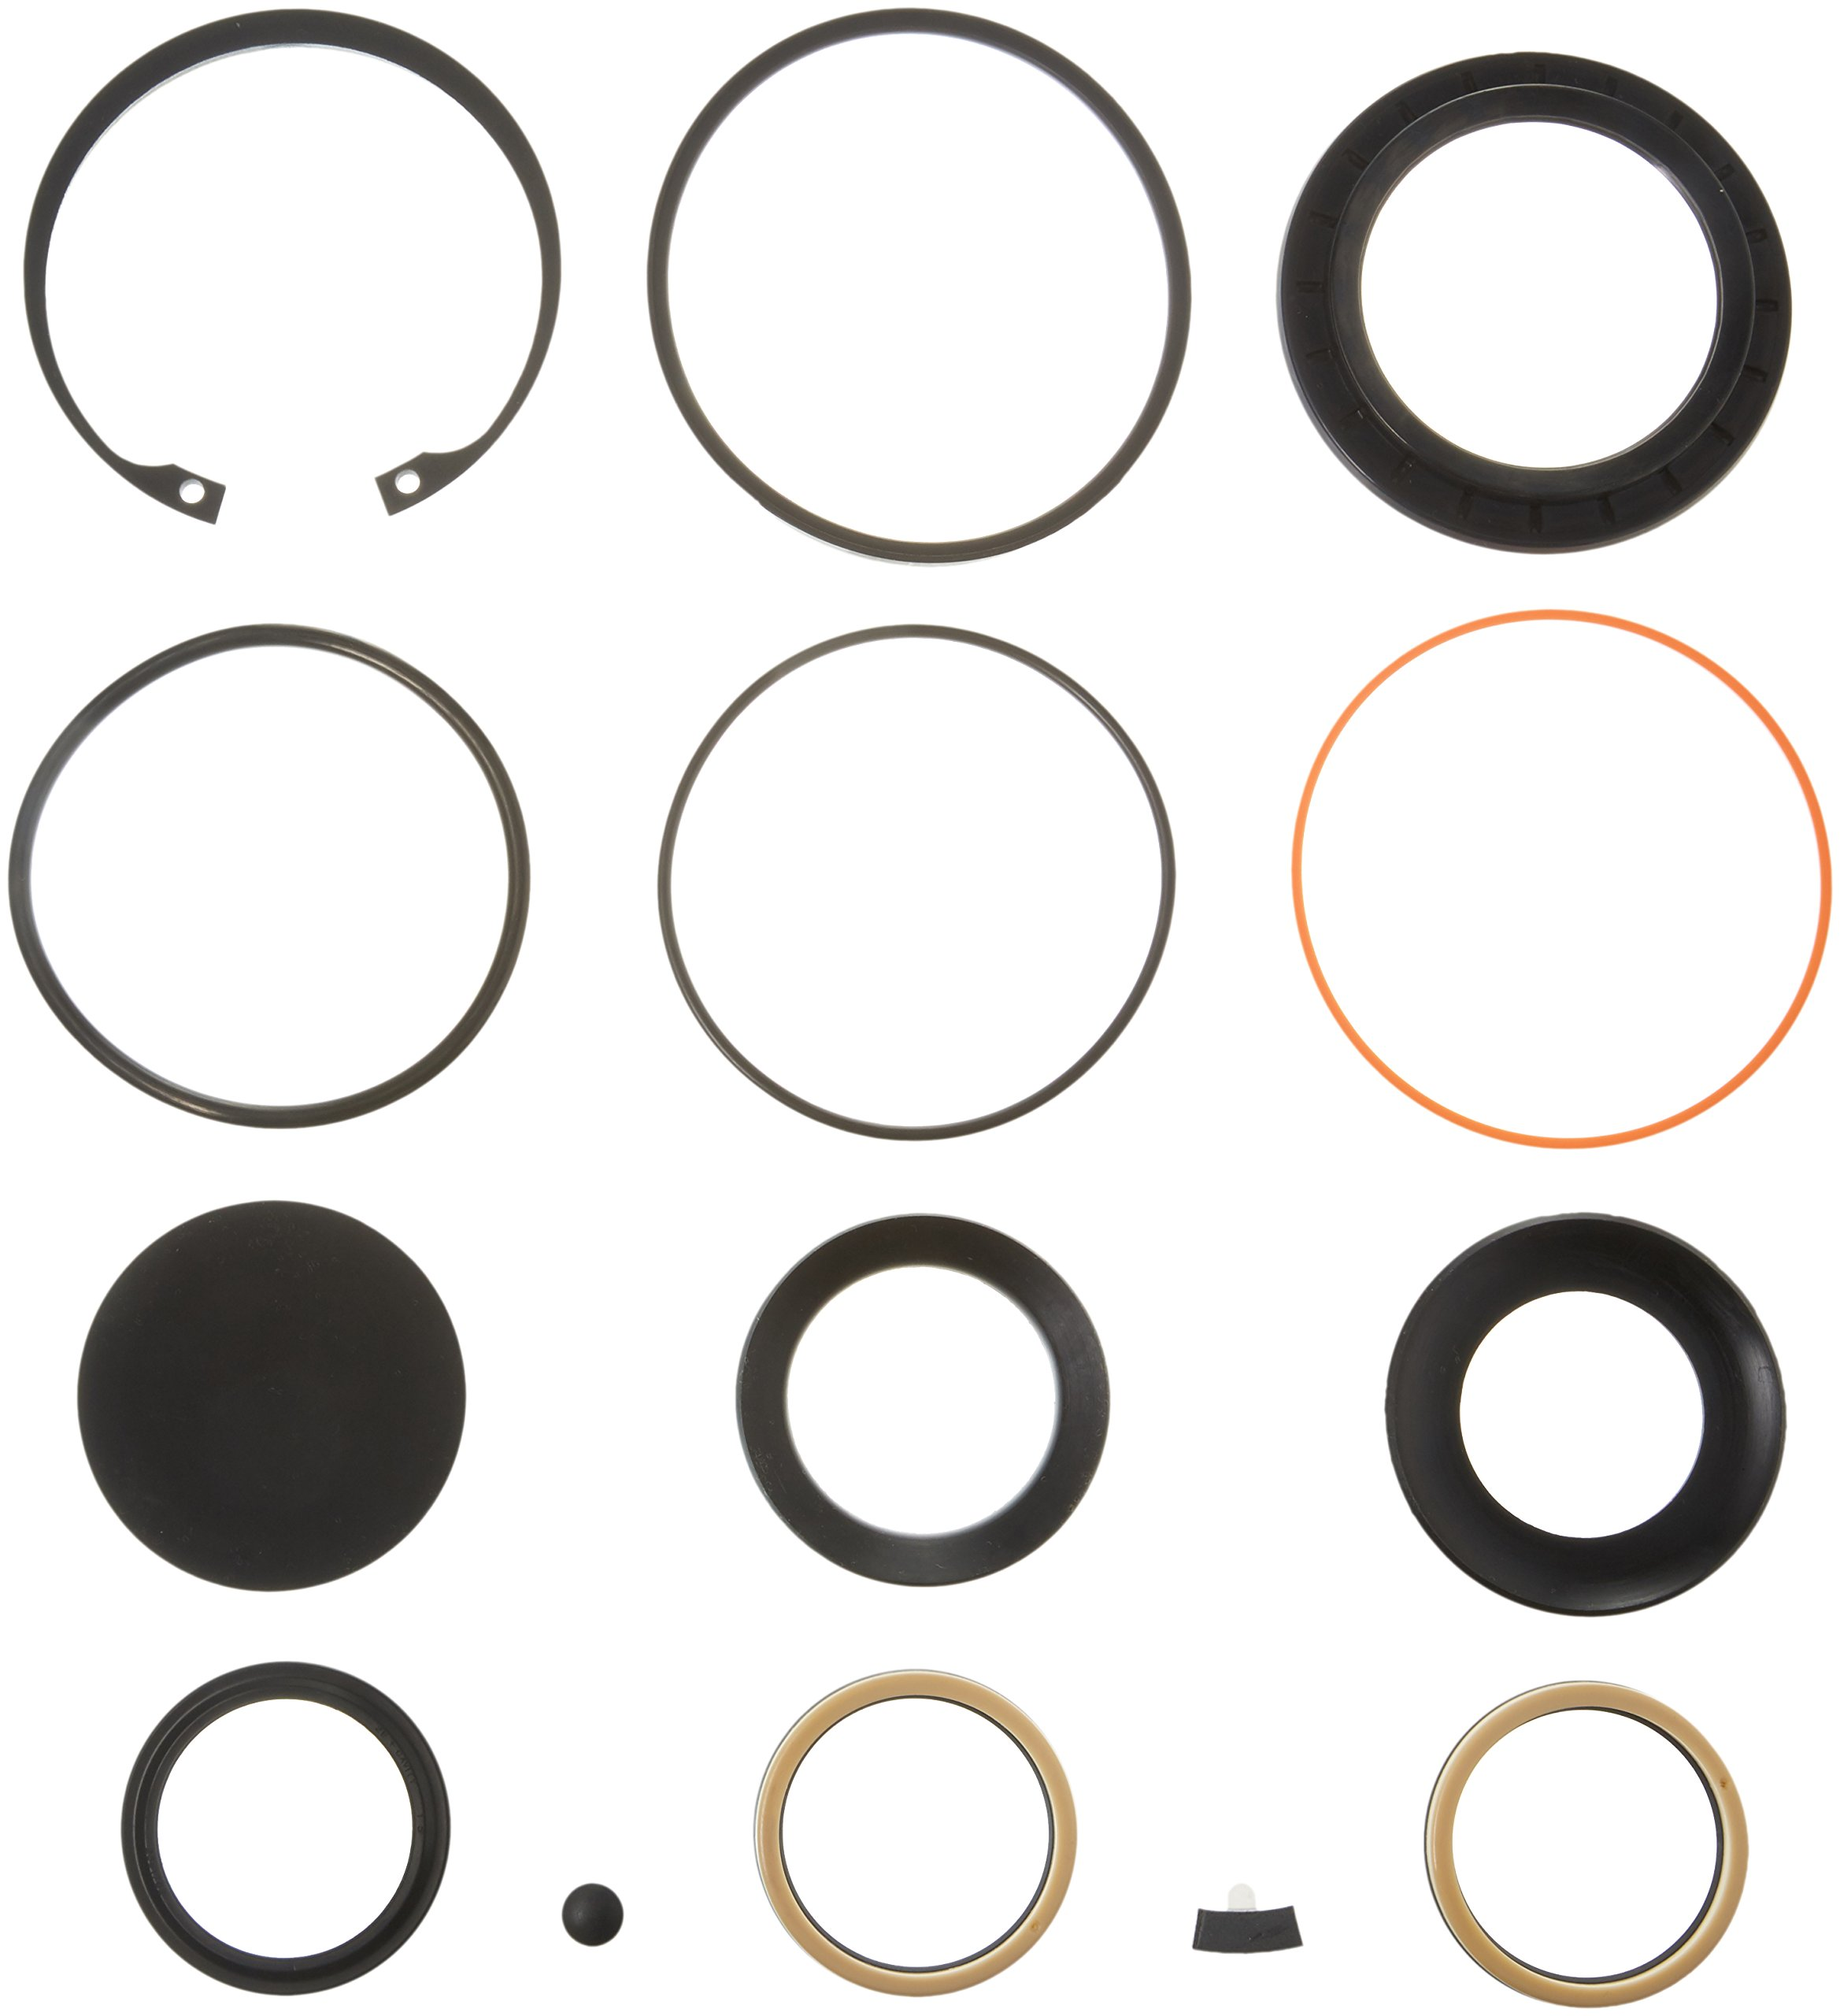 R. H. Sheppard 5545741 Sector Shaft Kit with Snap Ring/L-Seal by R. H. Sheppard